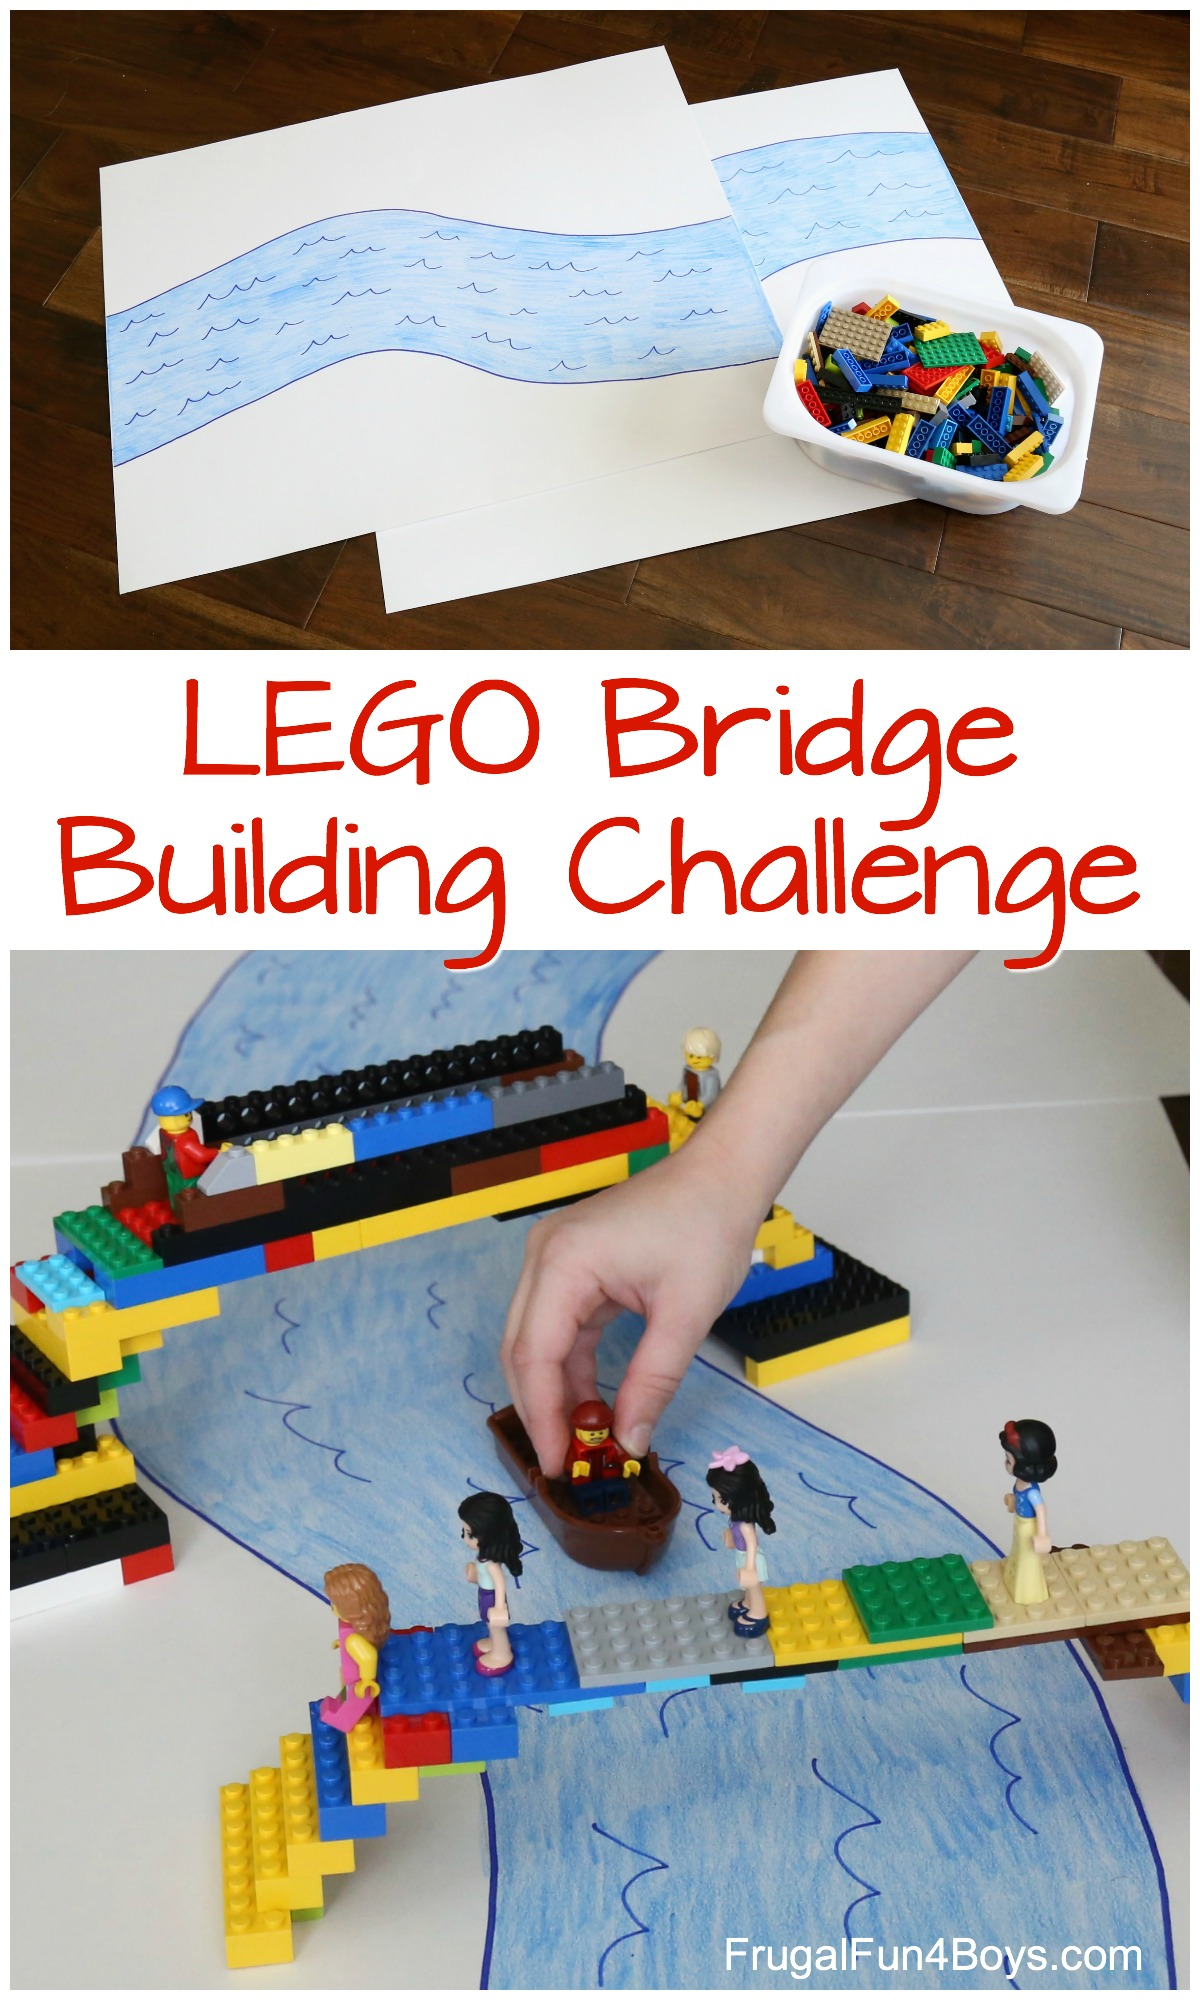 Frugal Fun For Boys And Girls Page 2 Learning Play